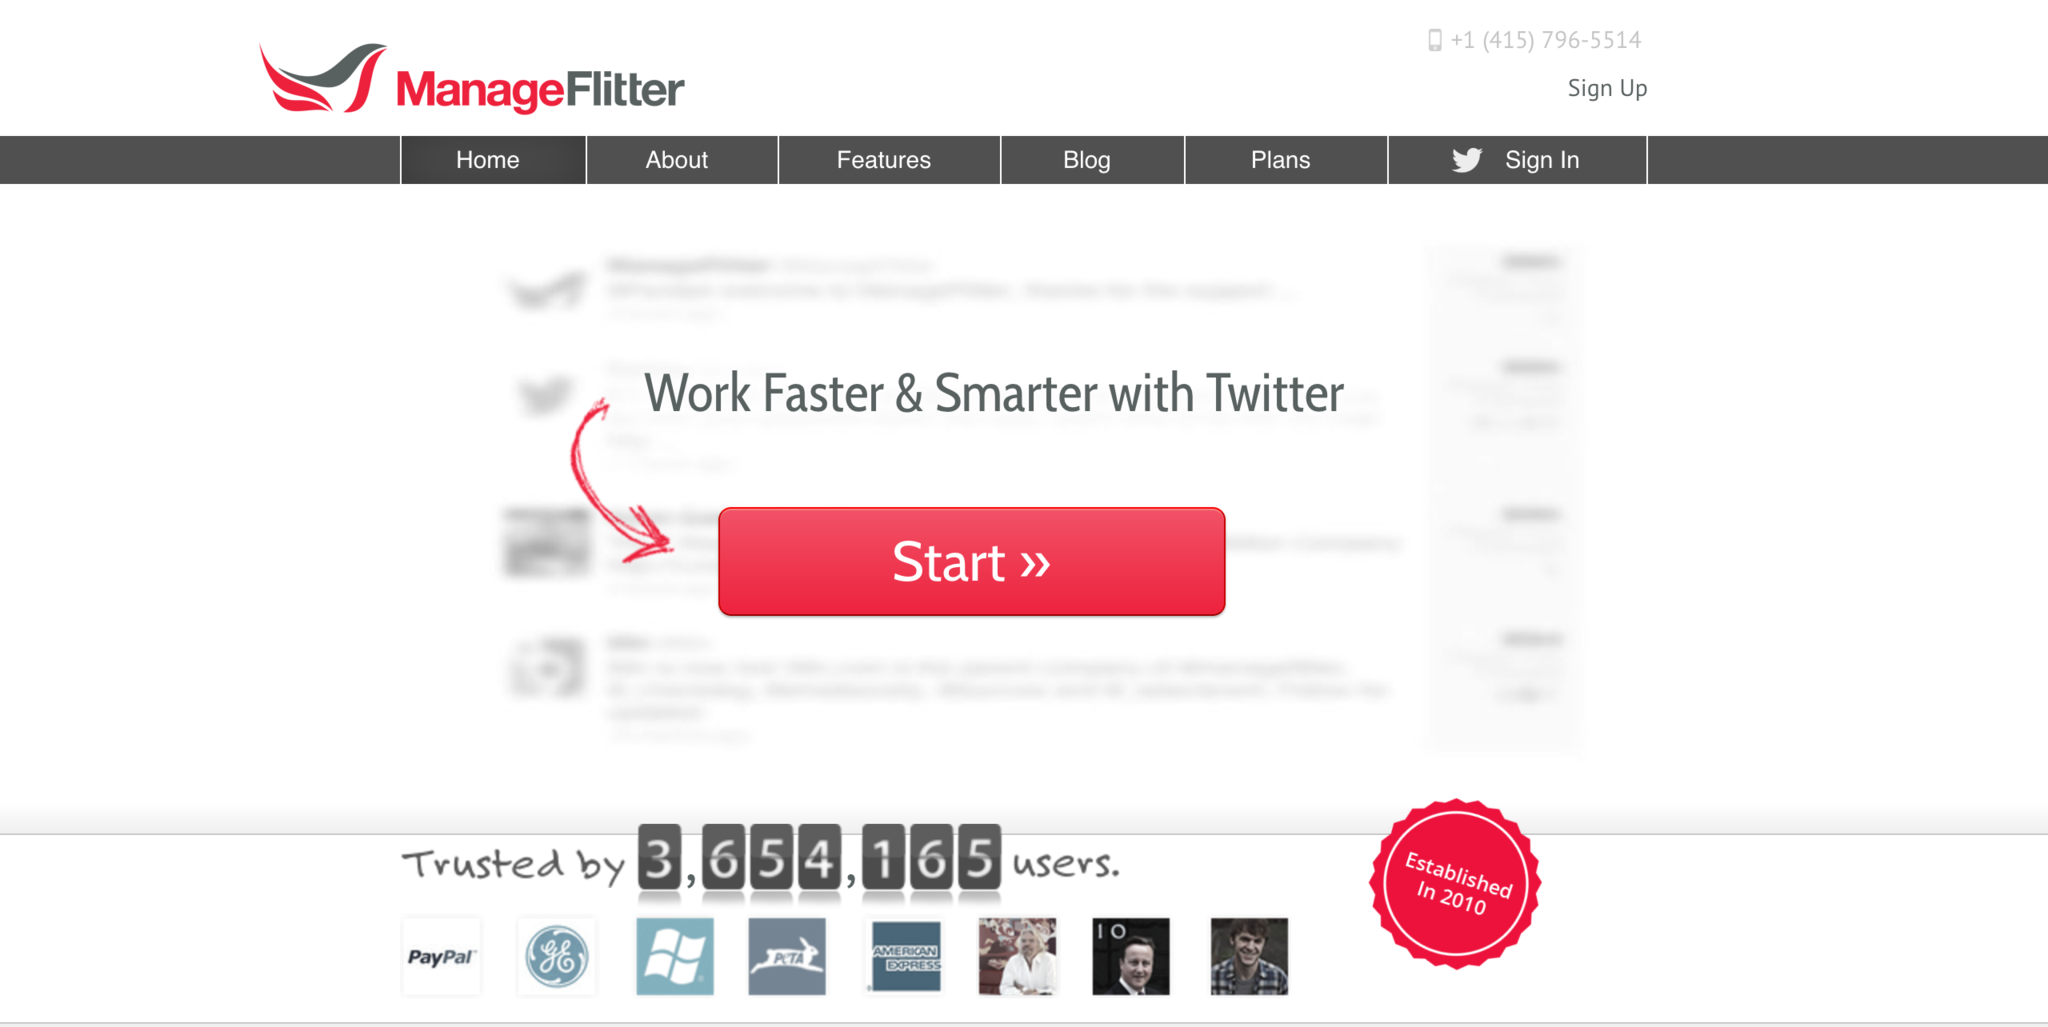 ManageFlitter___Work_faster___smarter_with_Twitter.png